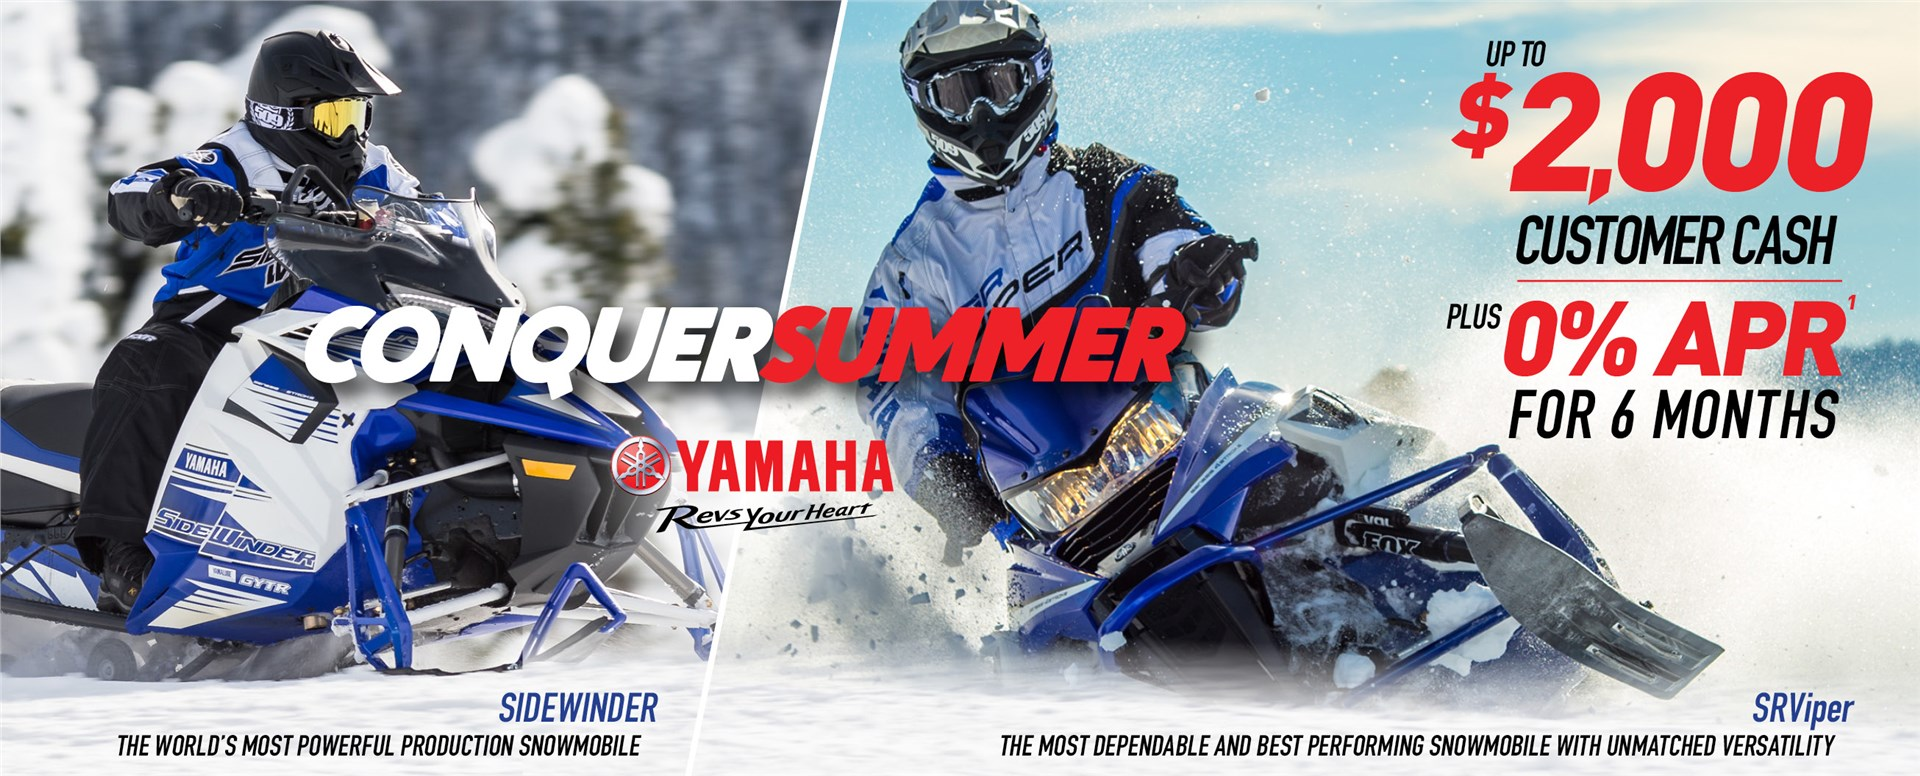 Yamaha Snowmobile Sale